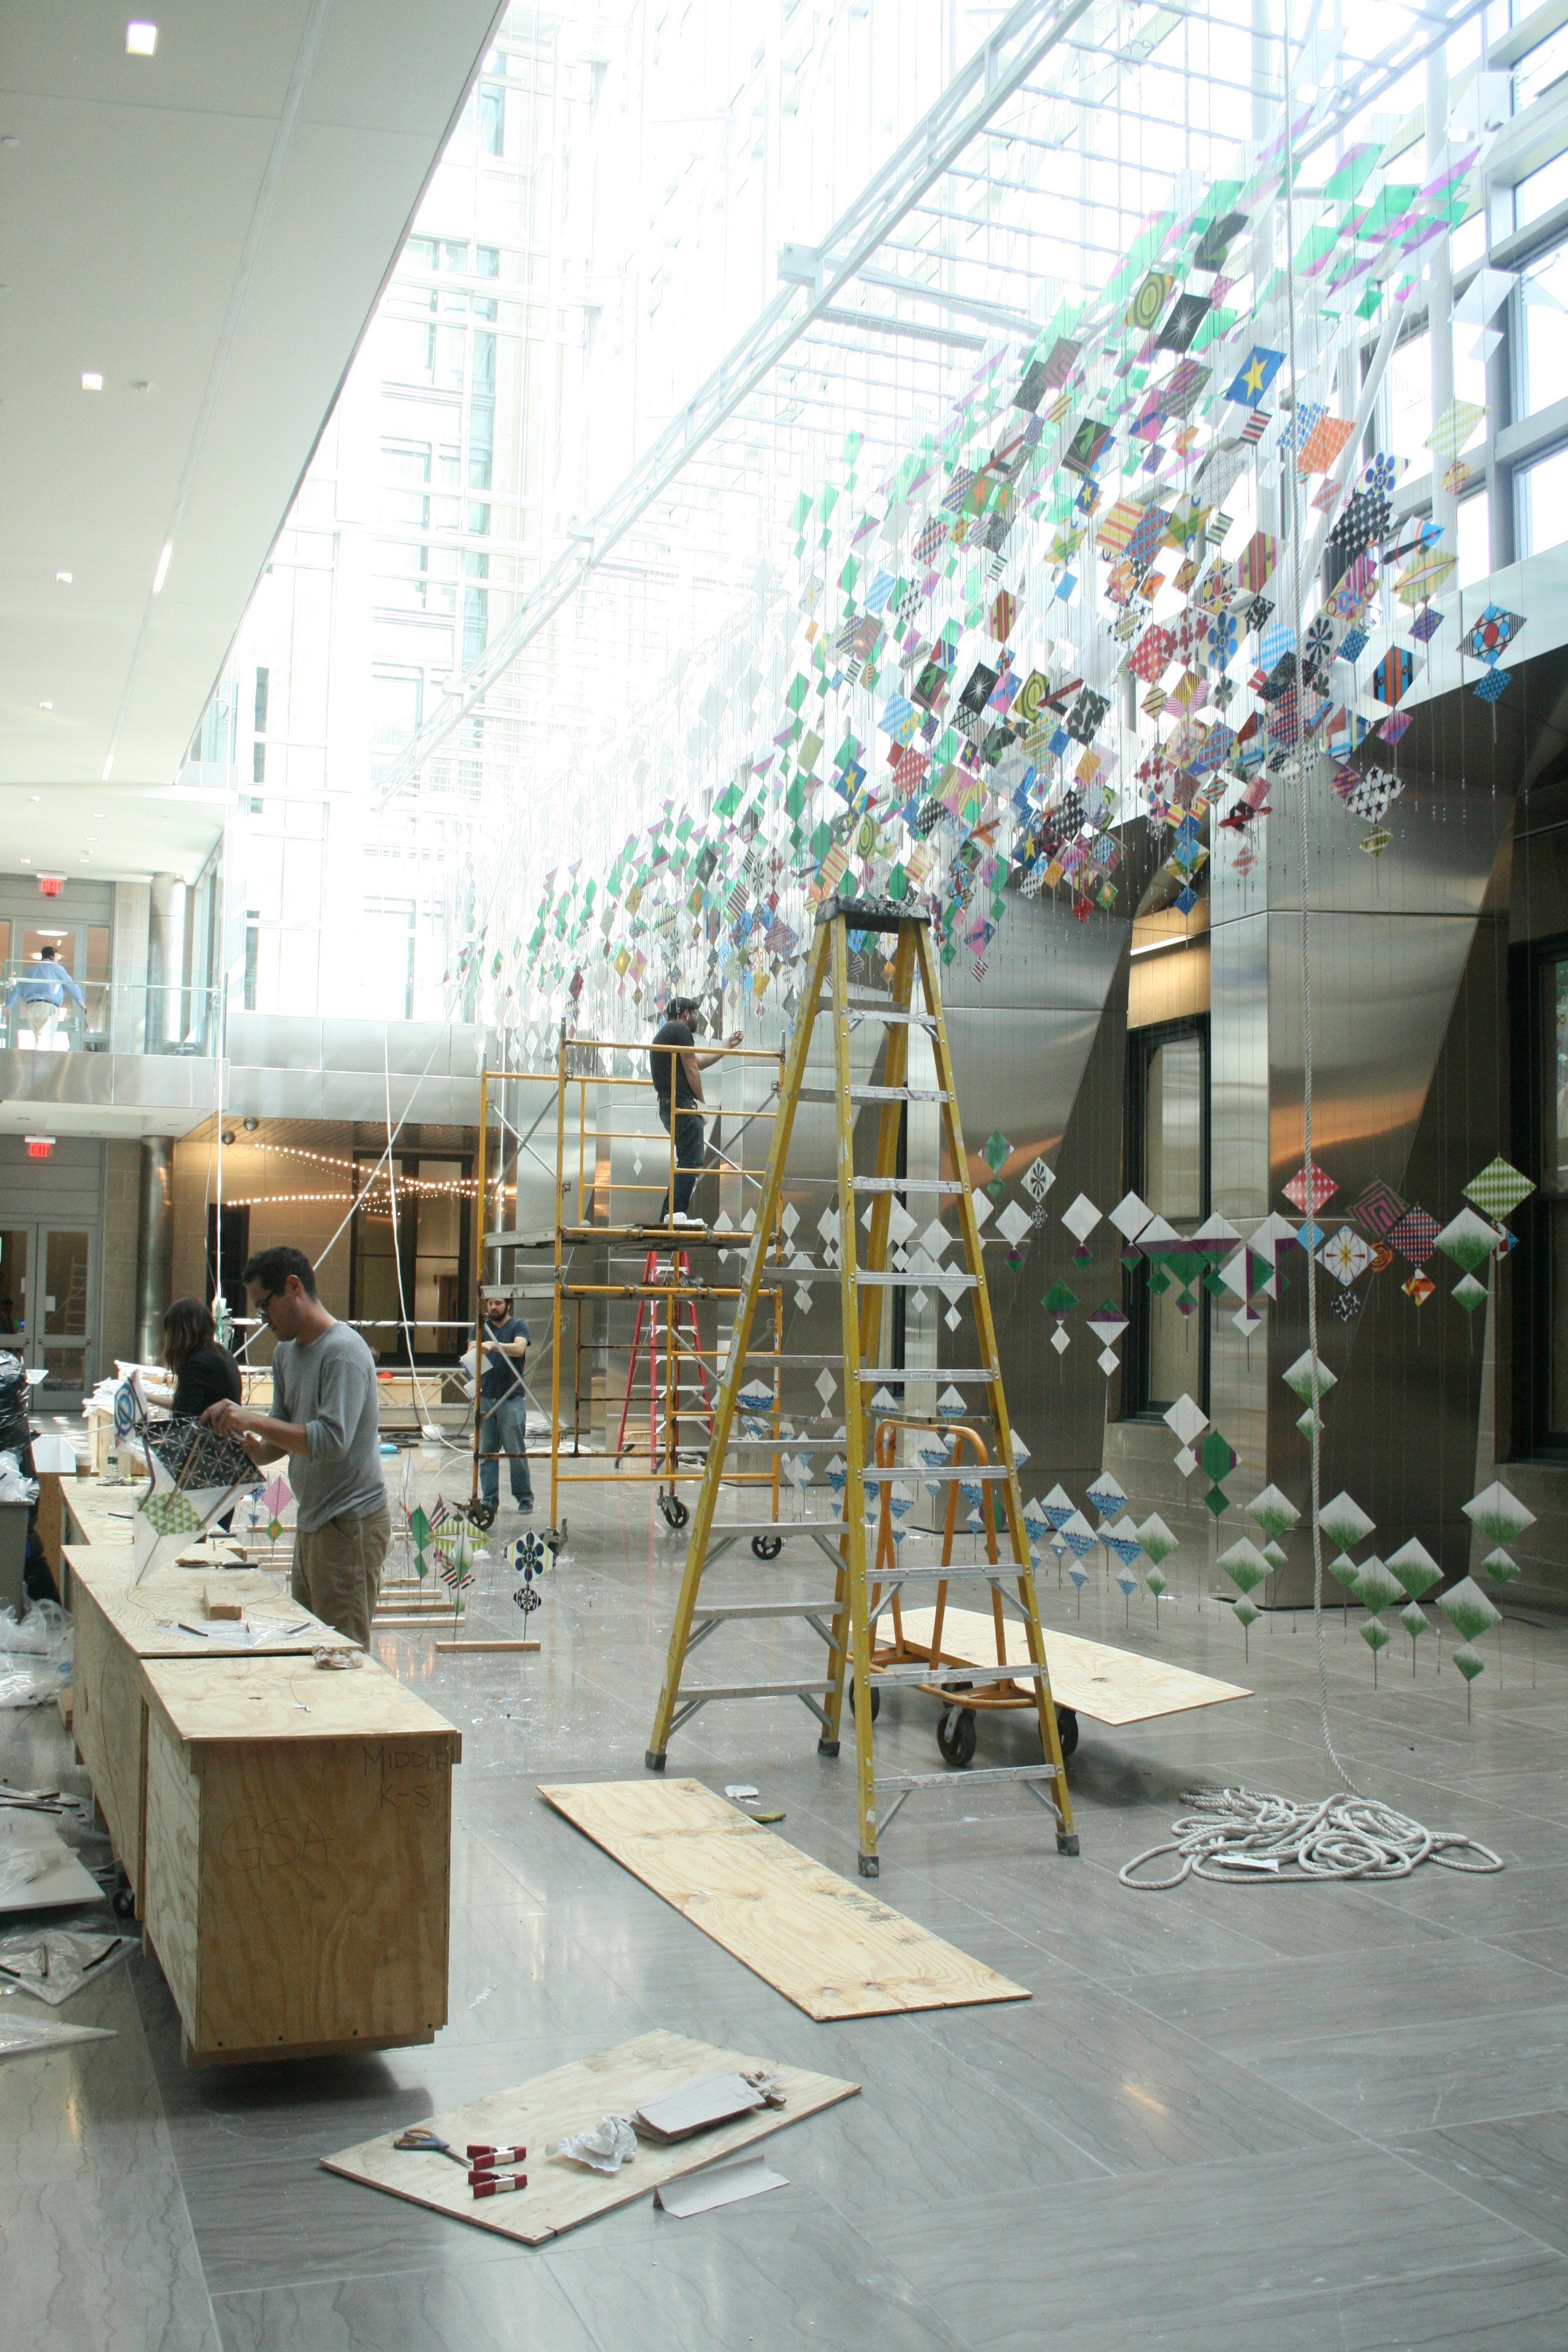 Installation of Jacob Hashimoto's Kites, September 2013.